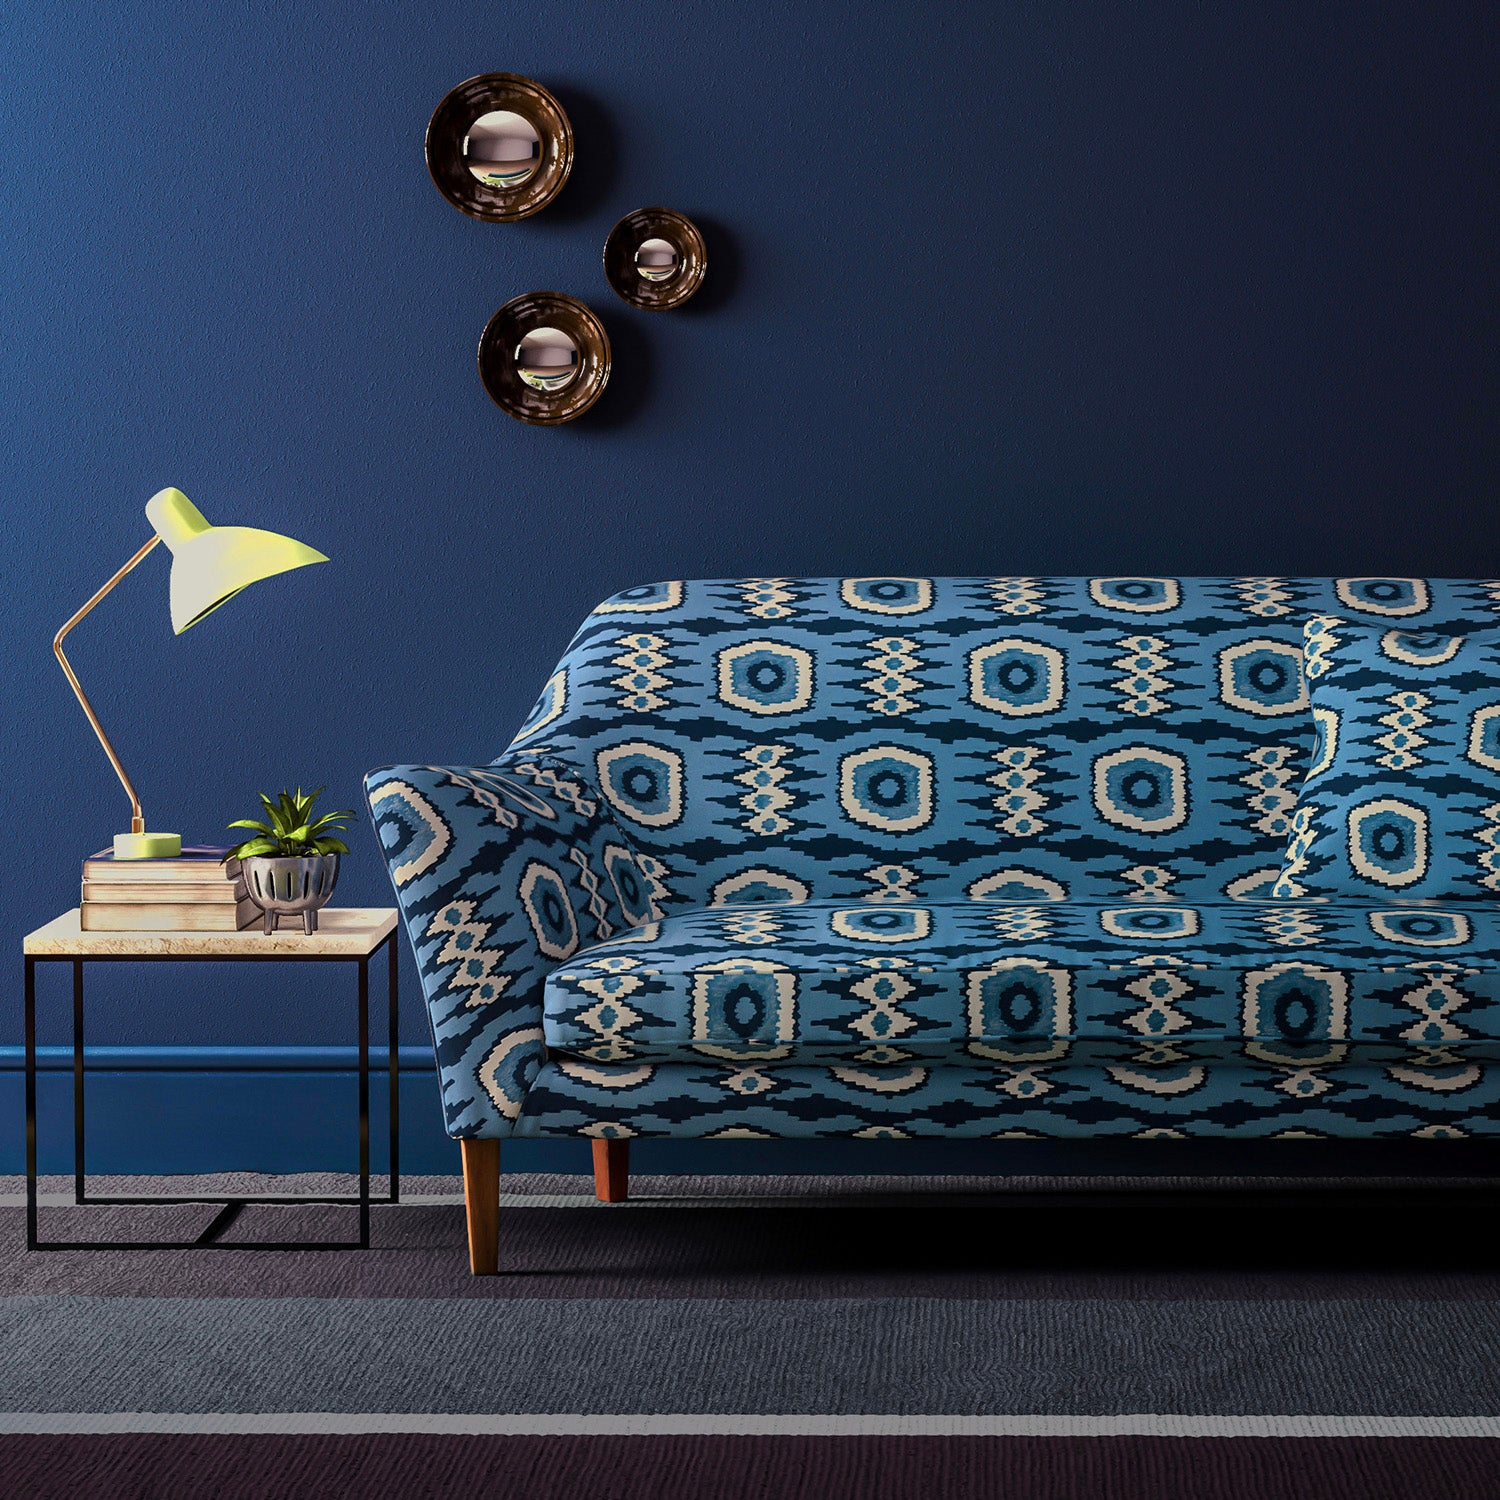 Velvet sofa upholstered in a blue velvet upholstery fabric with abstract print and stain resistant finish